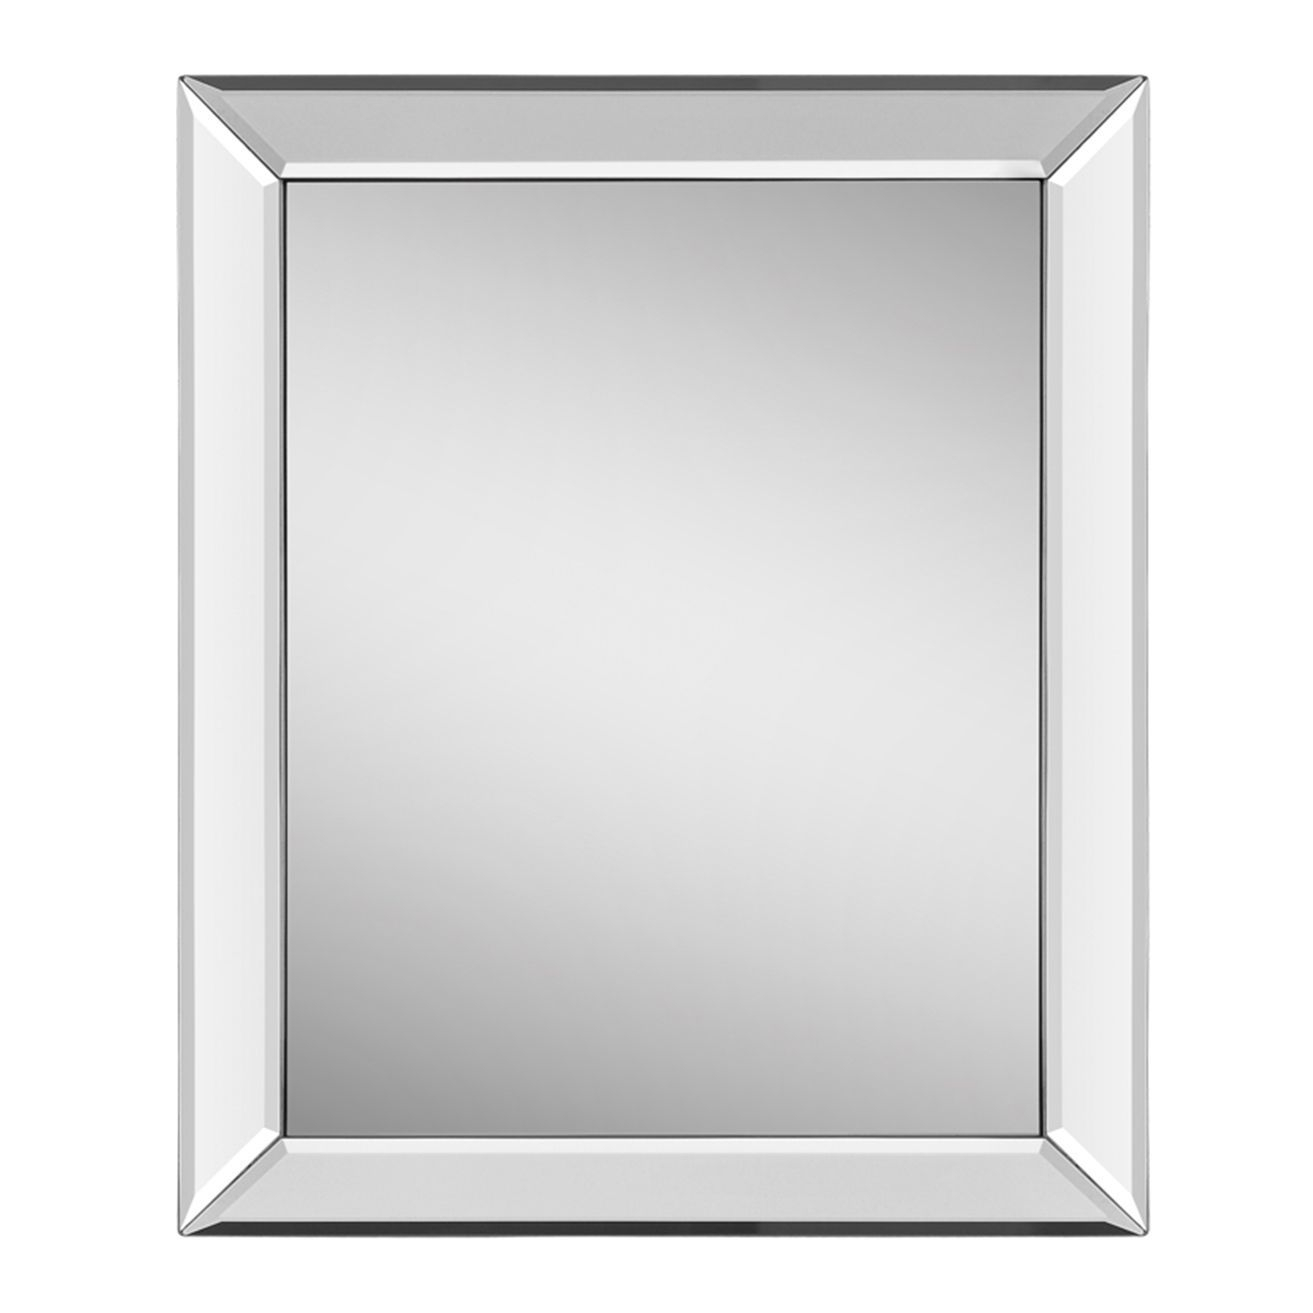 This Simple And Elegant Mirror Features A Polished Mirror In Tetbury Frameless Tri Bevel Wall Mirrors (View 7 of 20)